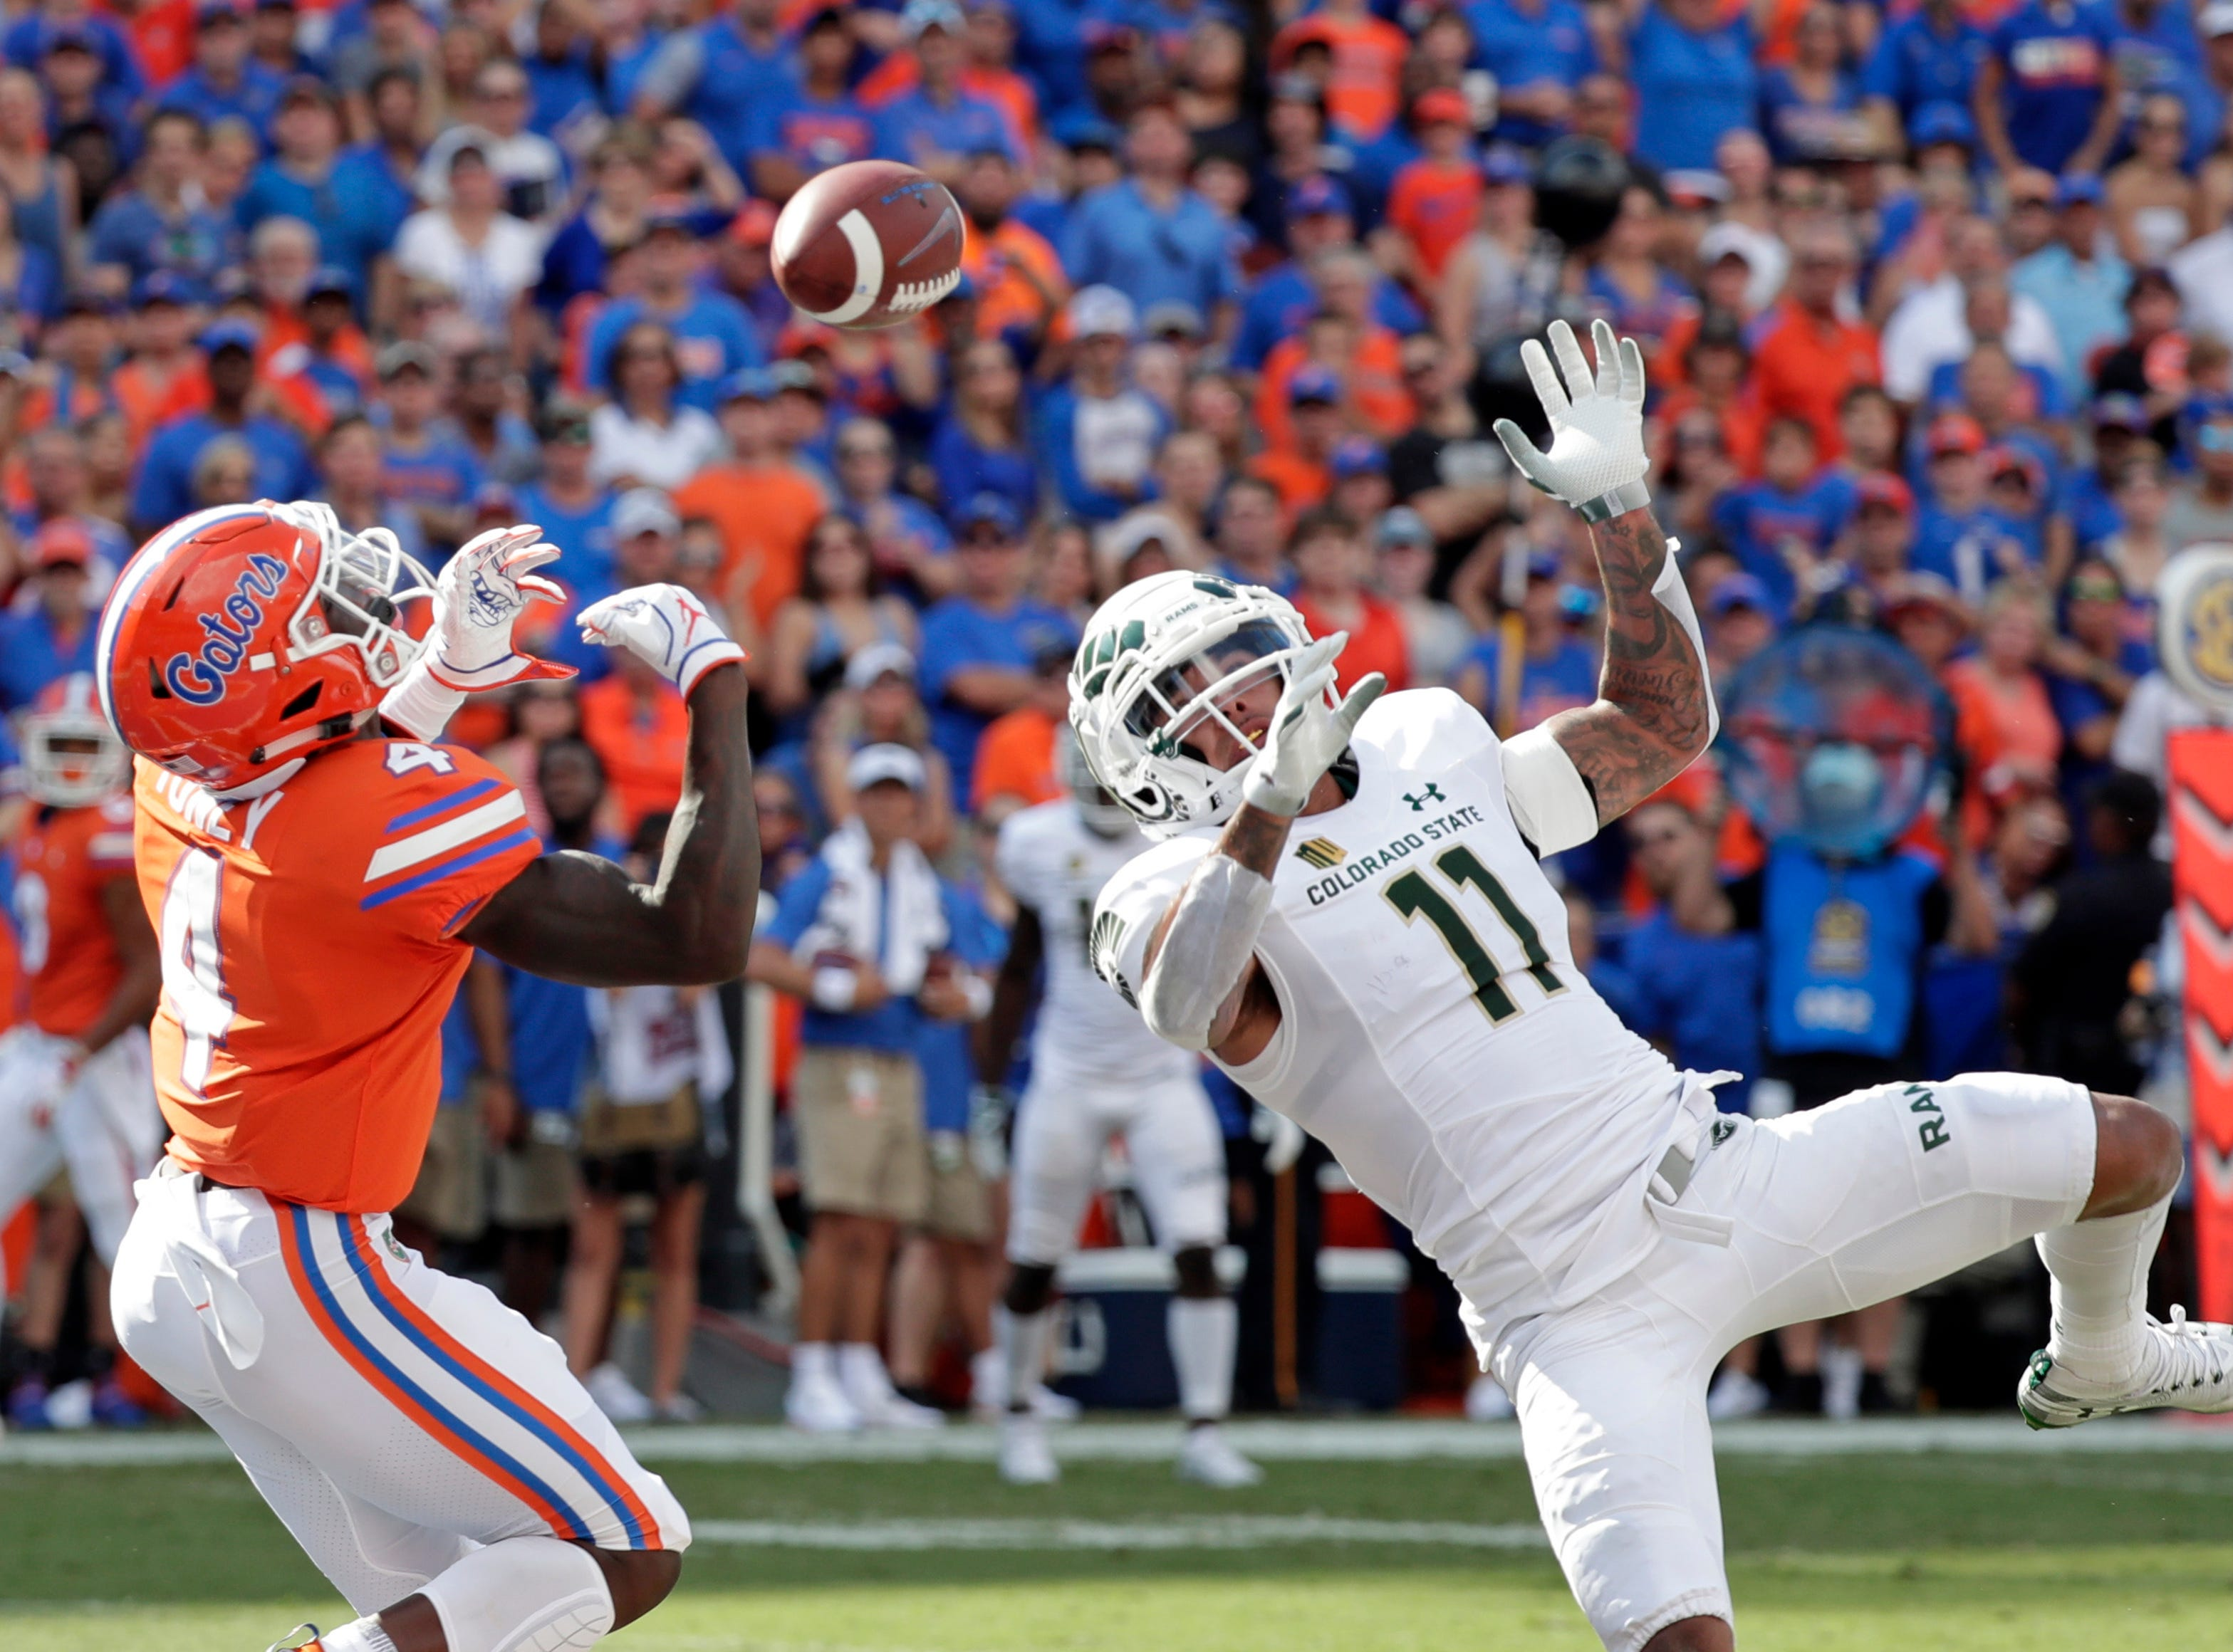 Colorado State safety Jordan Fogal (11) breaks up a pass intended for Florida running back Kadarius Toney (4) during the first half of an NCAA college football game, Saturday, Sept. 15, 2018, in Gainesville, Fla. (AP Photo/John Raoux)